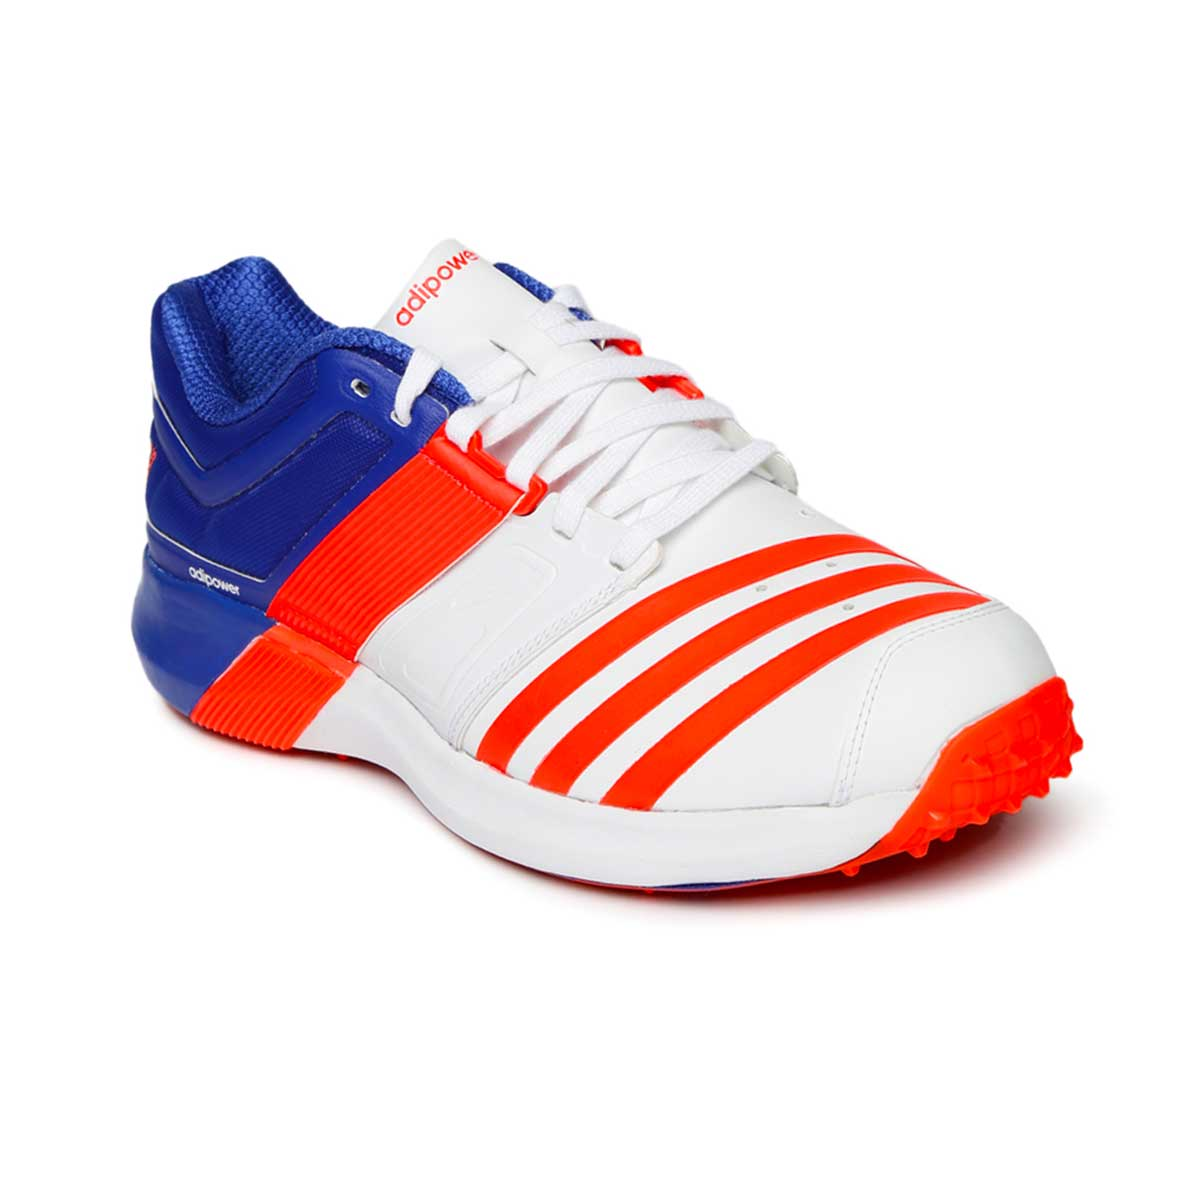 9a6b23c55c6d36 Buy Adidas AdiPower Vector Cricket Shoes (White Solred Blue) Online